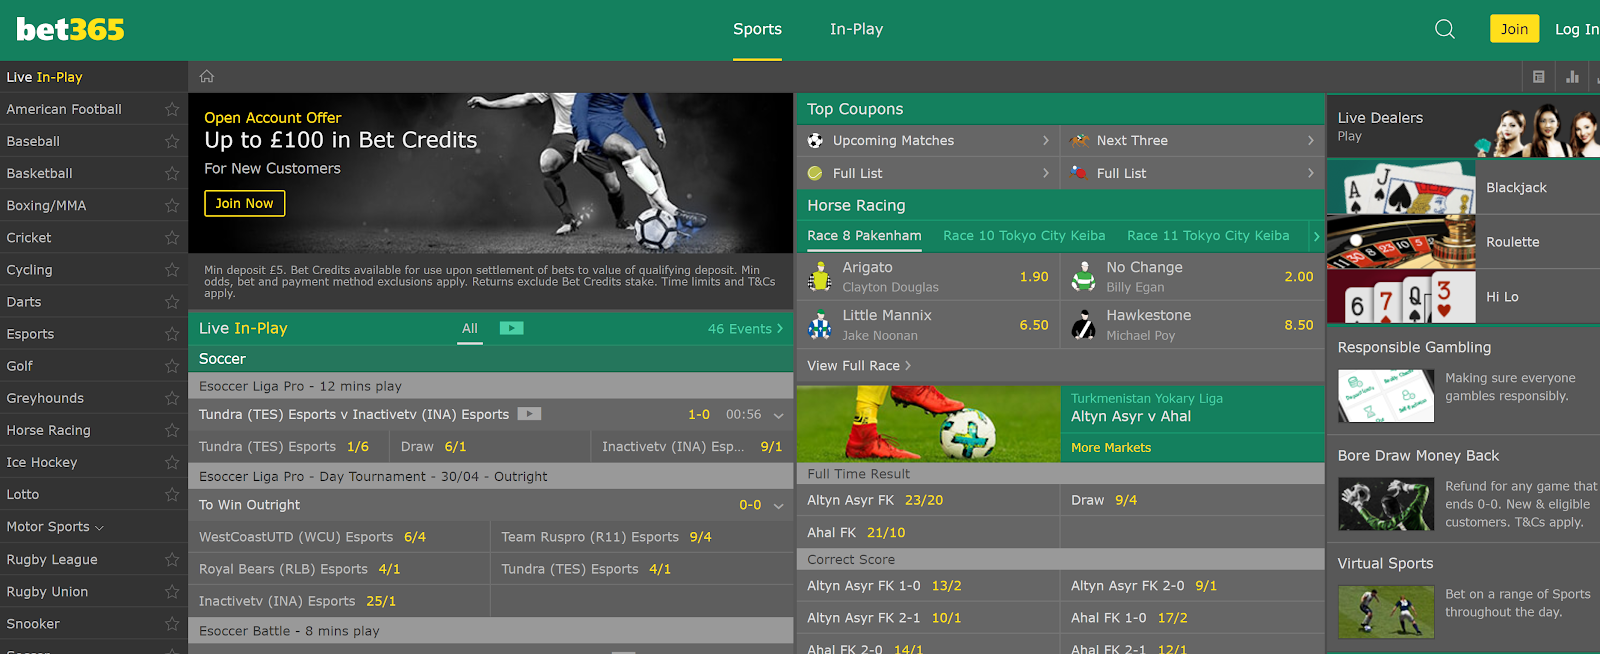 Bet365 has one of the best betting apps